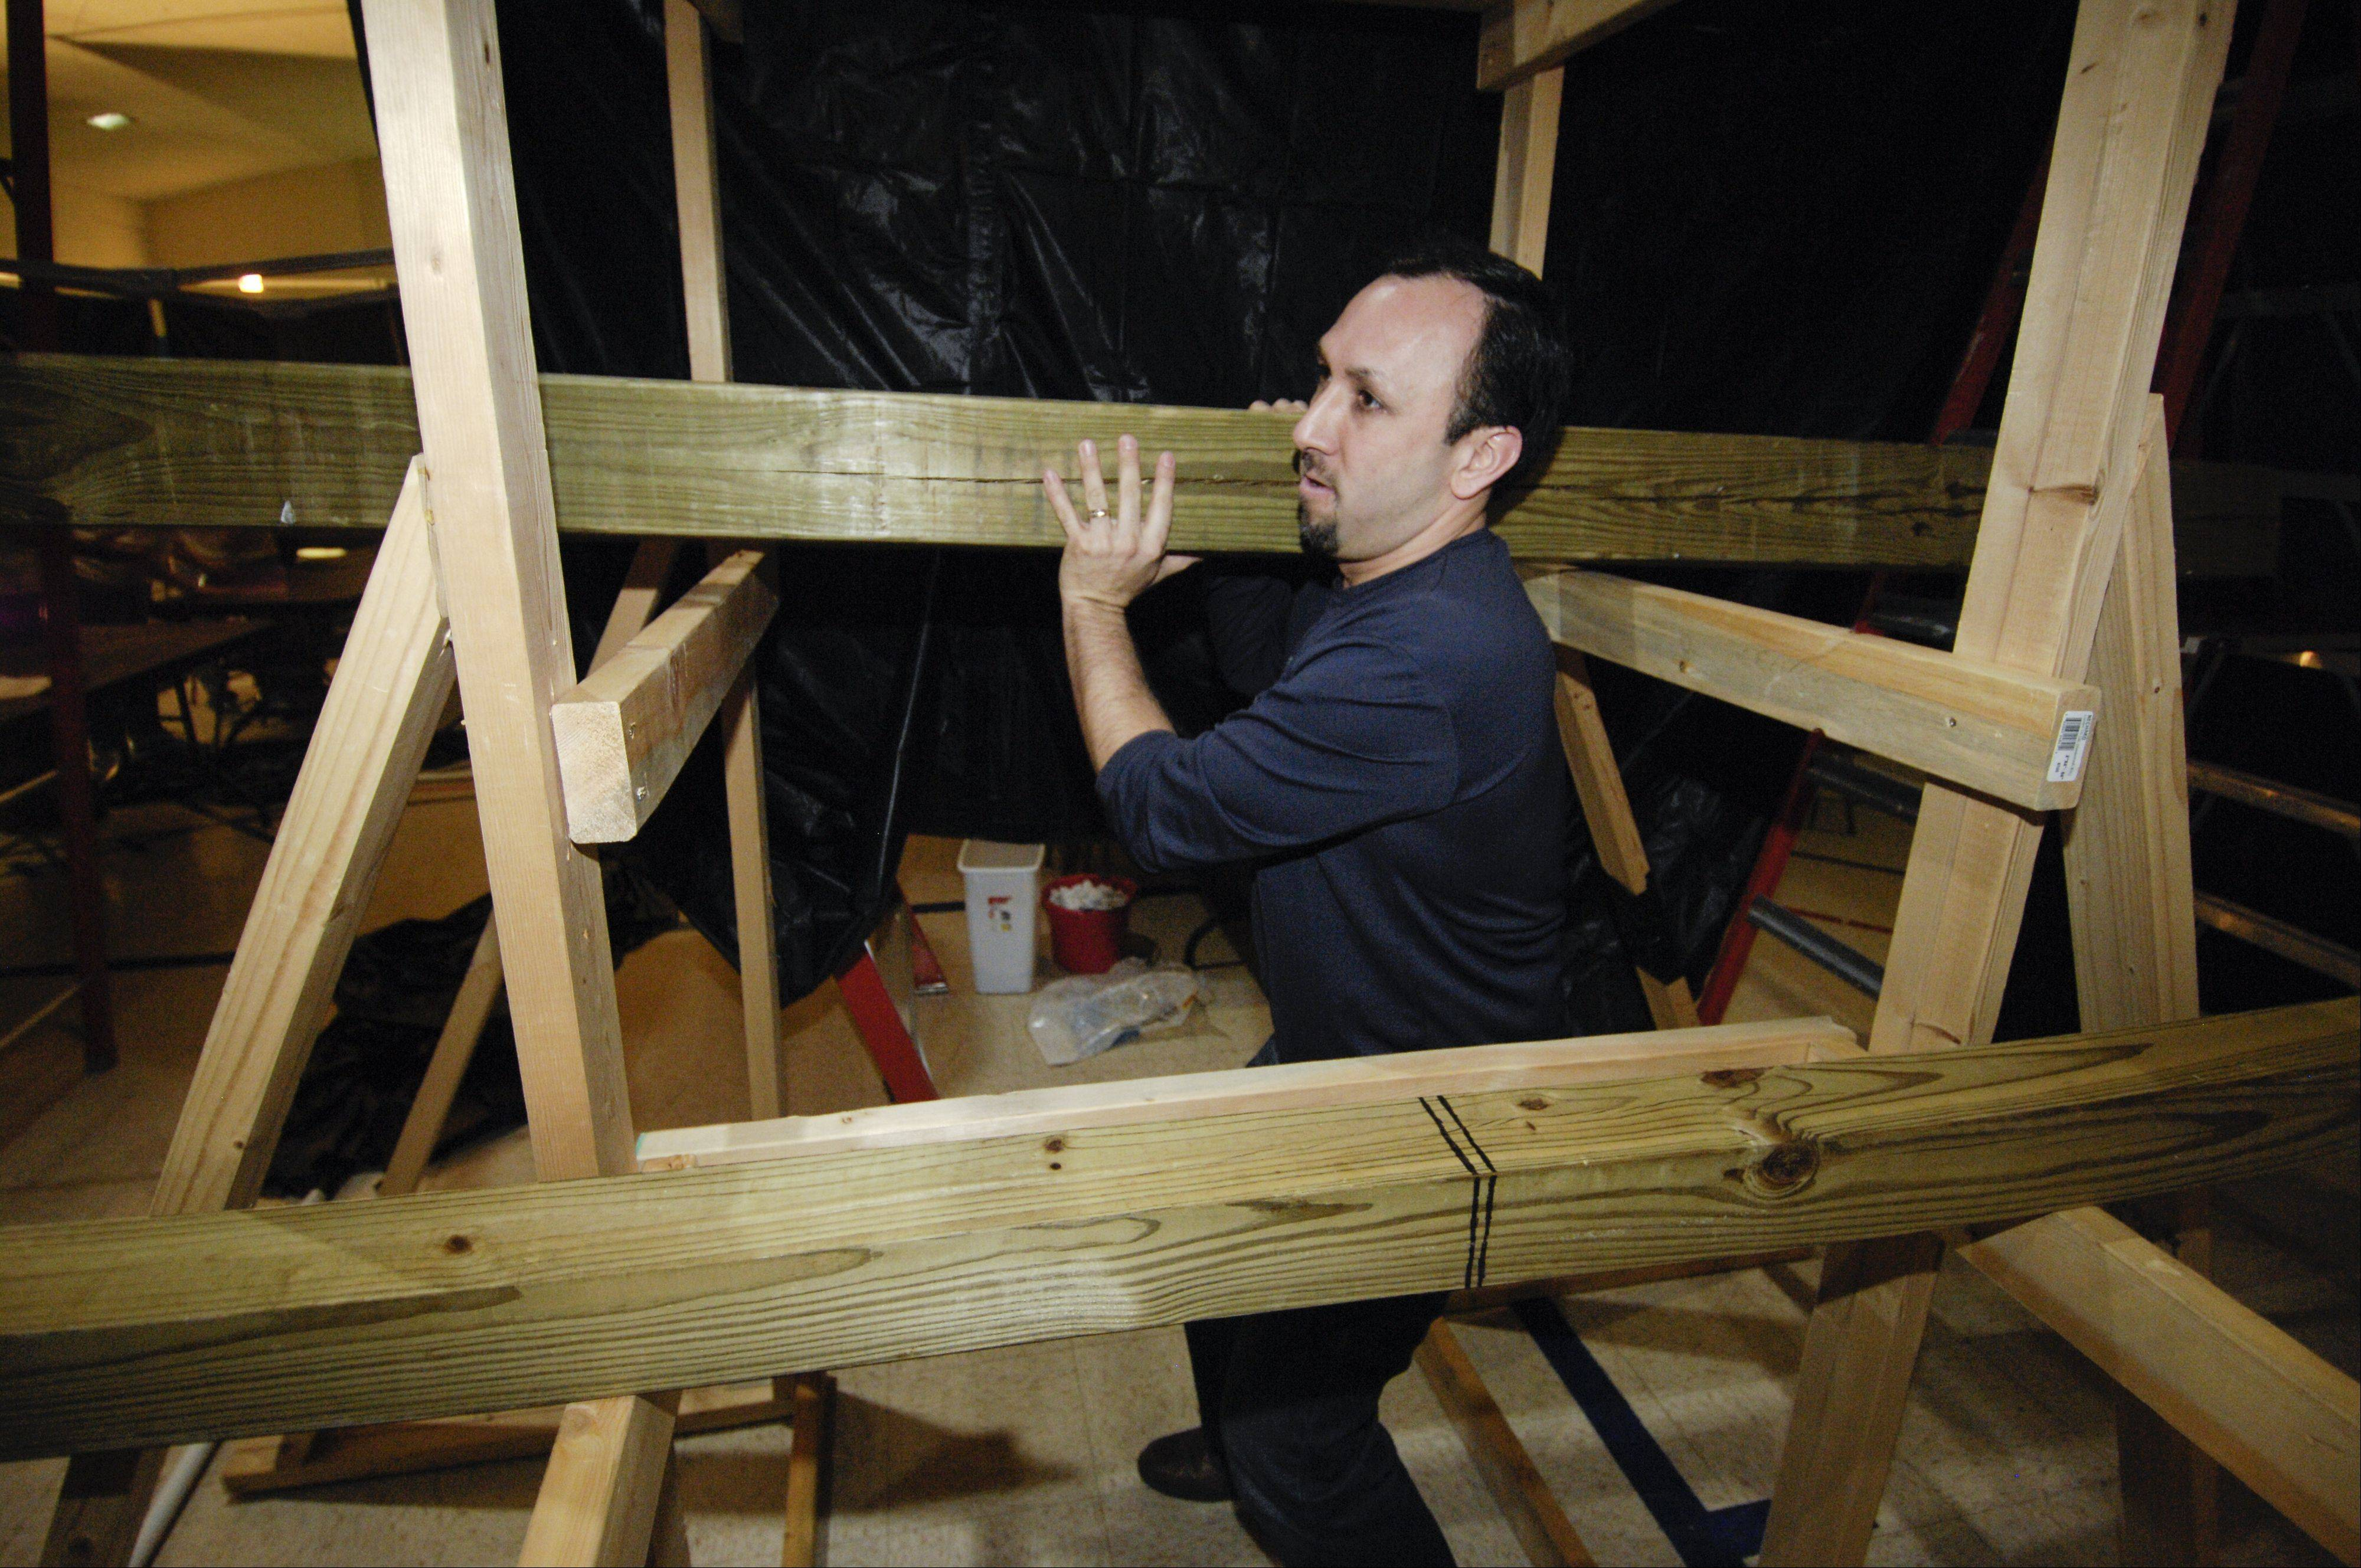 The Rev. Kevin Gushiken demonstrates lifting a large wooden beam that simulates the cross that Jesus carried. Harvard Avenue Evangelical Free Church in Villa Park is sponsoring an Easter Maze that will lead people through the events leading to the crucifixion.